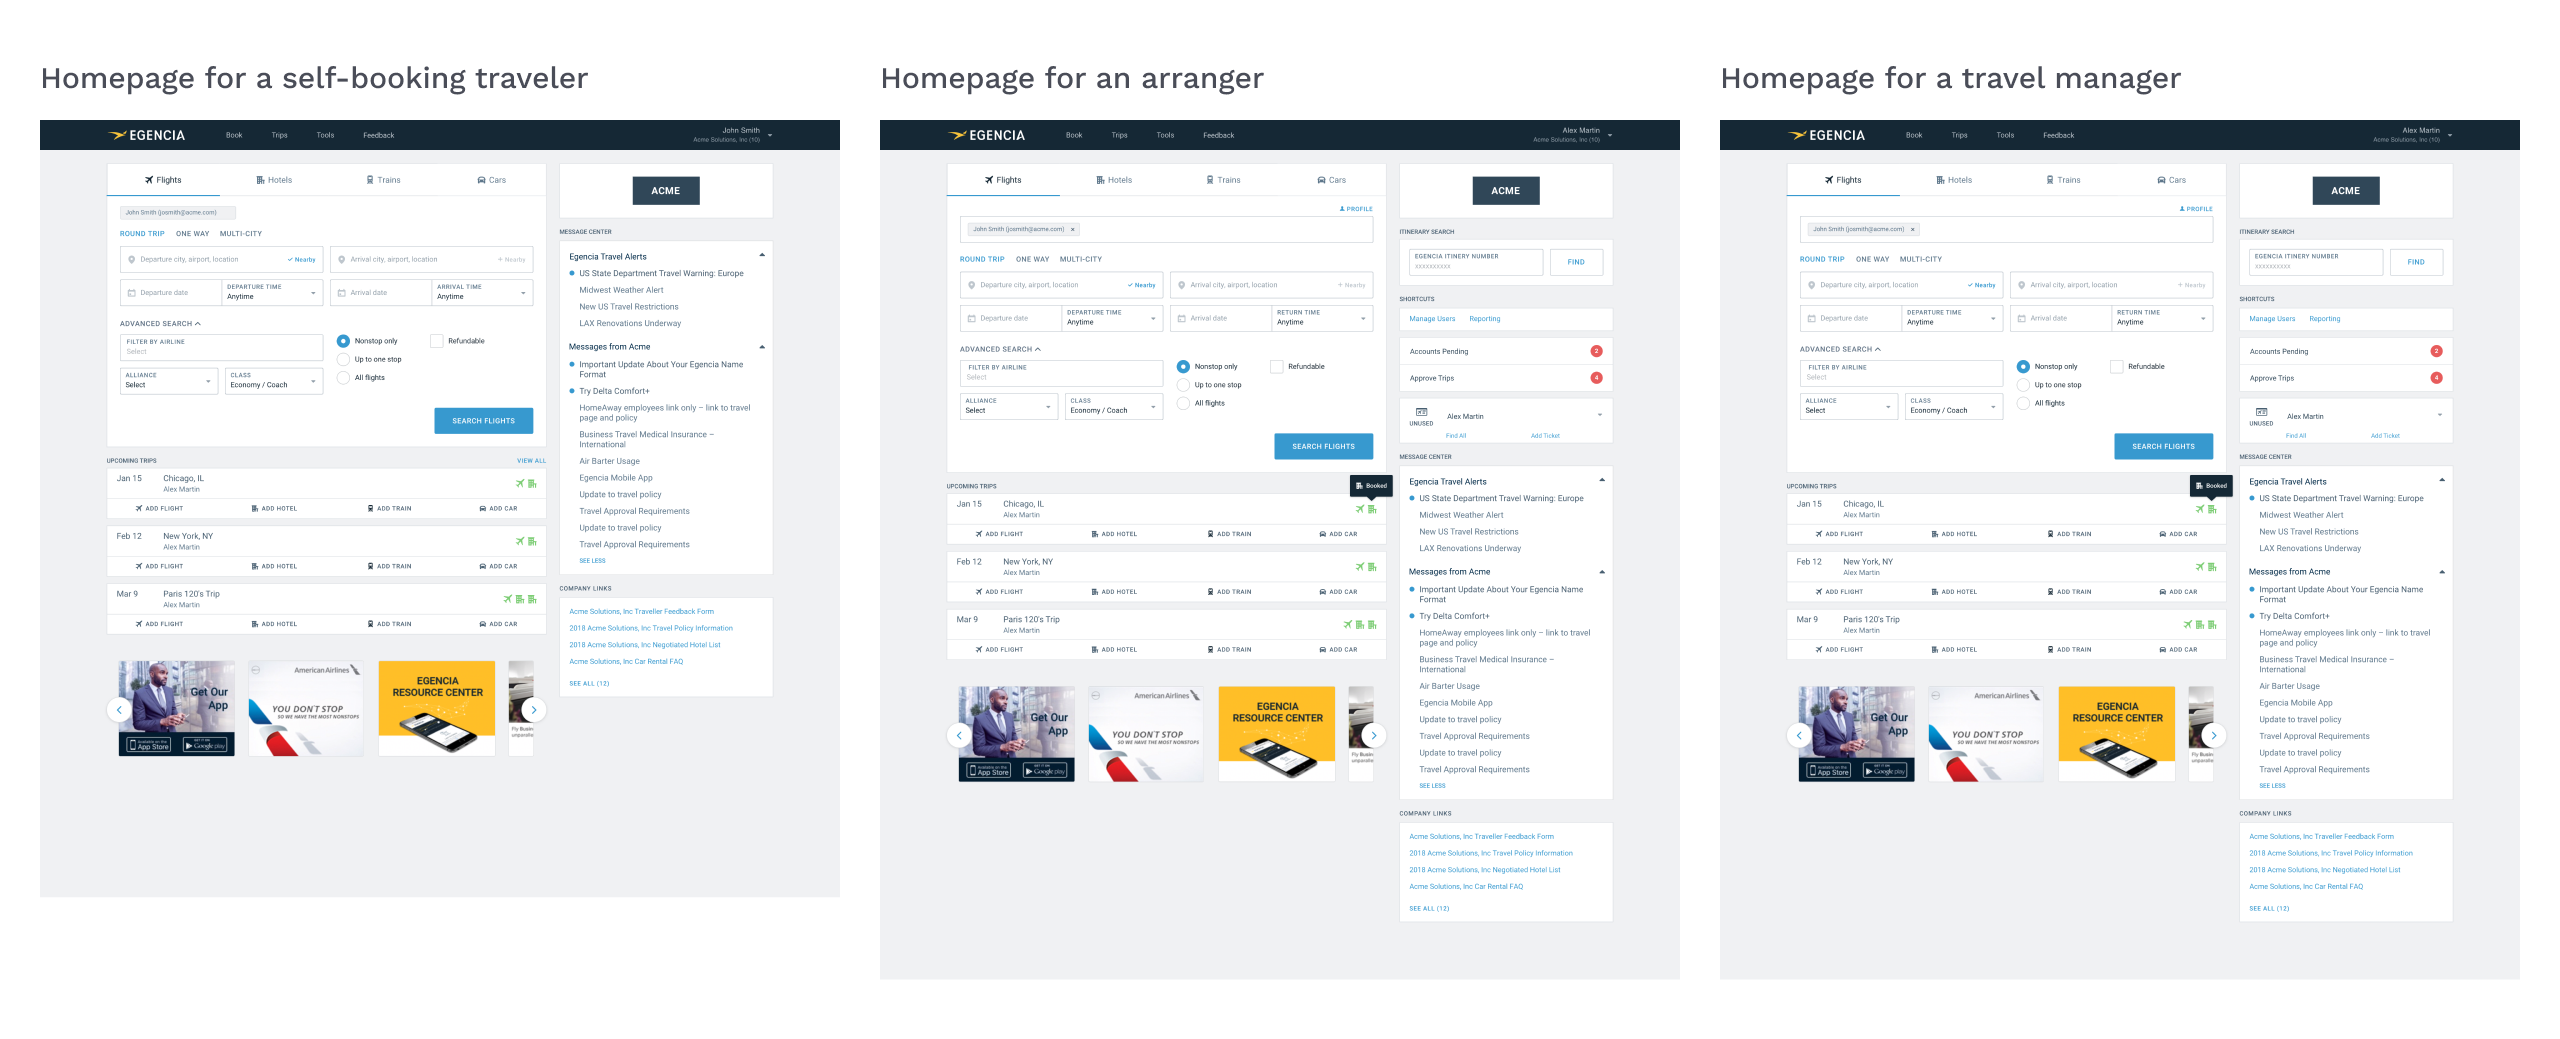 Screenshot of the homepage for a traveler, arranger, and travel manager. The screenshots have minimal differences.